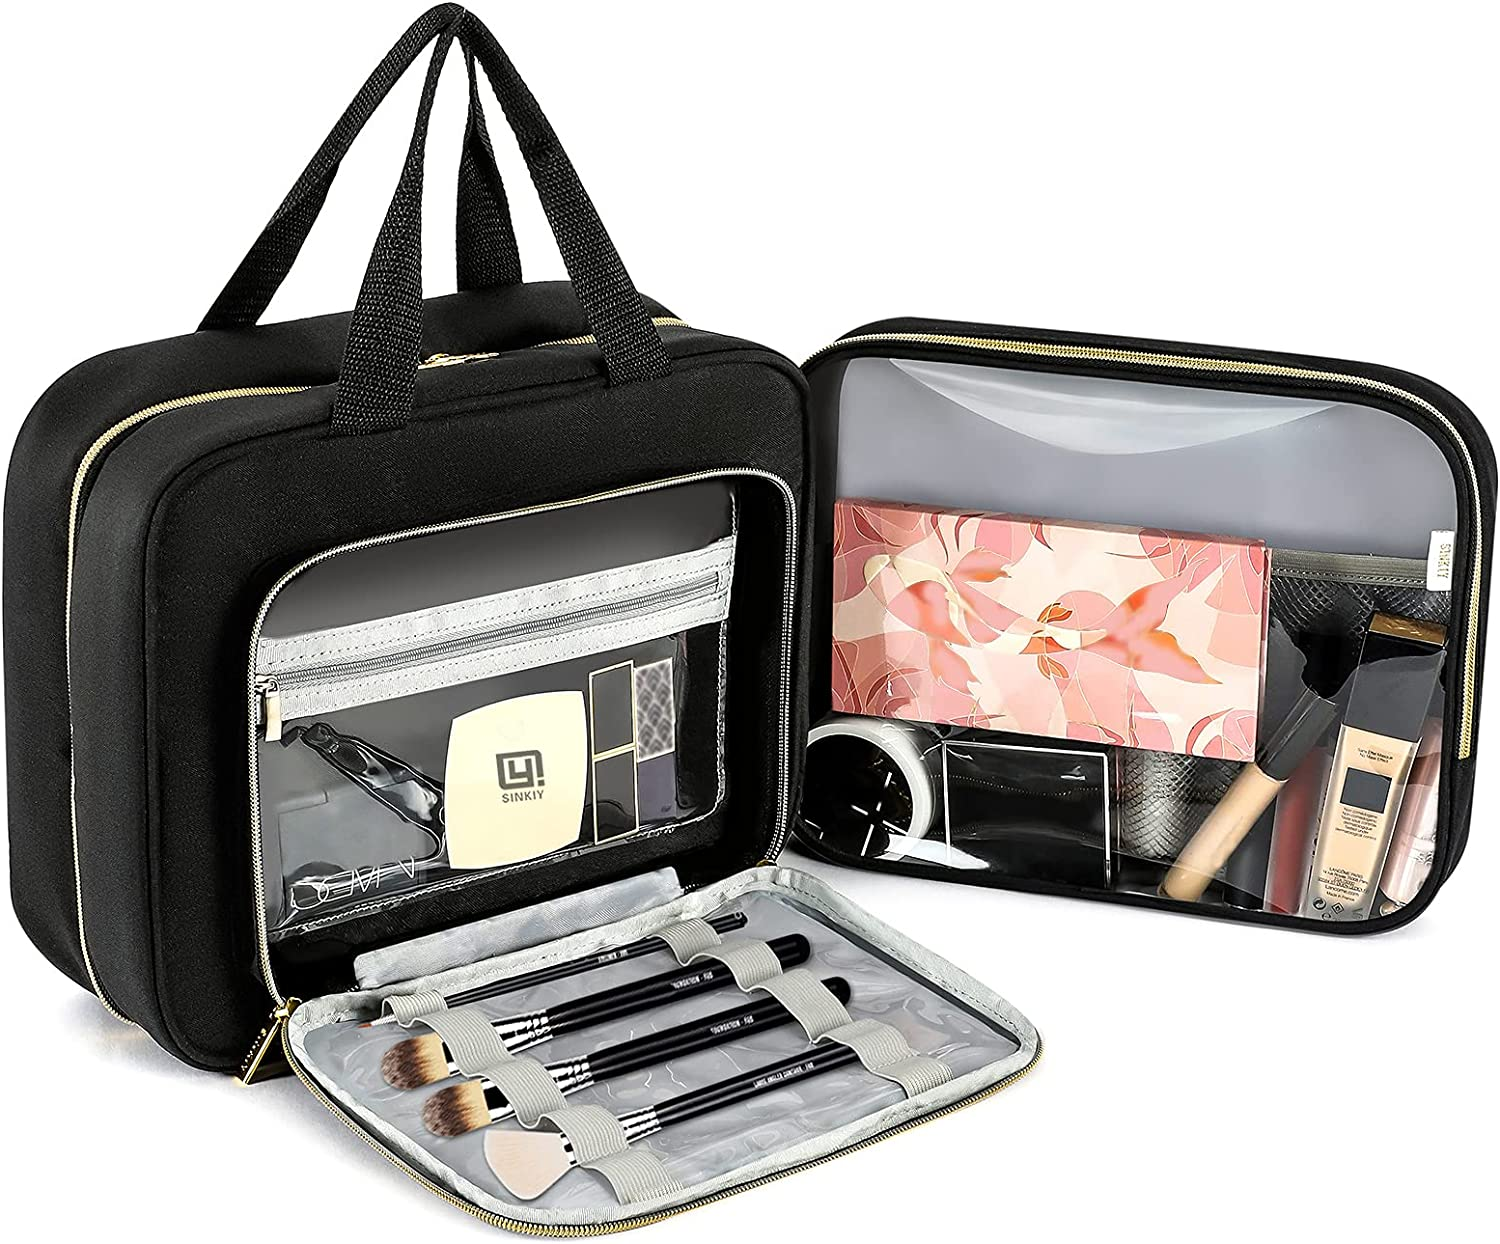 Large Hanging Toiletry Bags,SINKIY Travel Toiletry Bag Organizer with Hanging Hook, Water-resistant Cosmetic Makeup Bag Travel Organizer for Shampoo, Full Sized Container, Toiletries (Black)